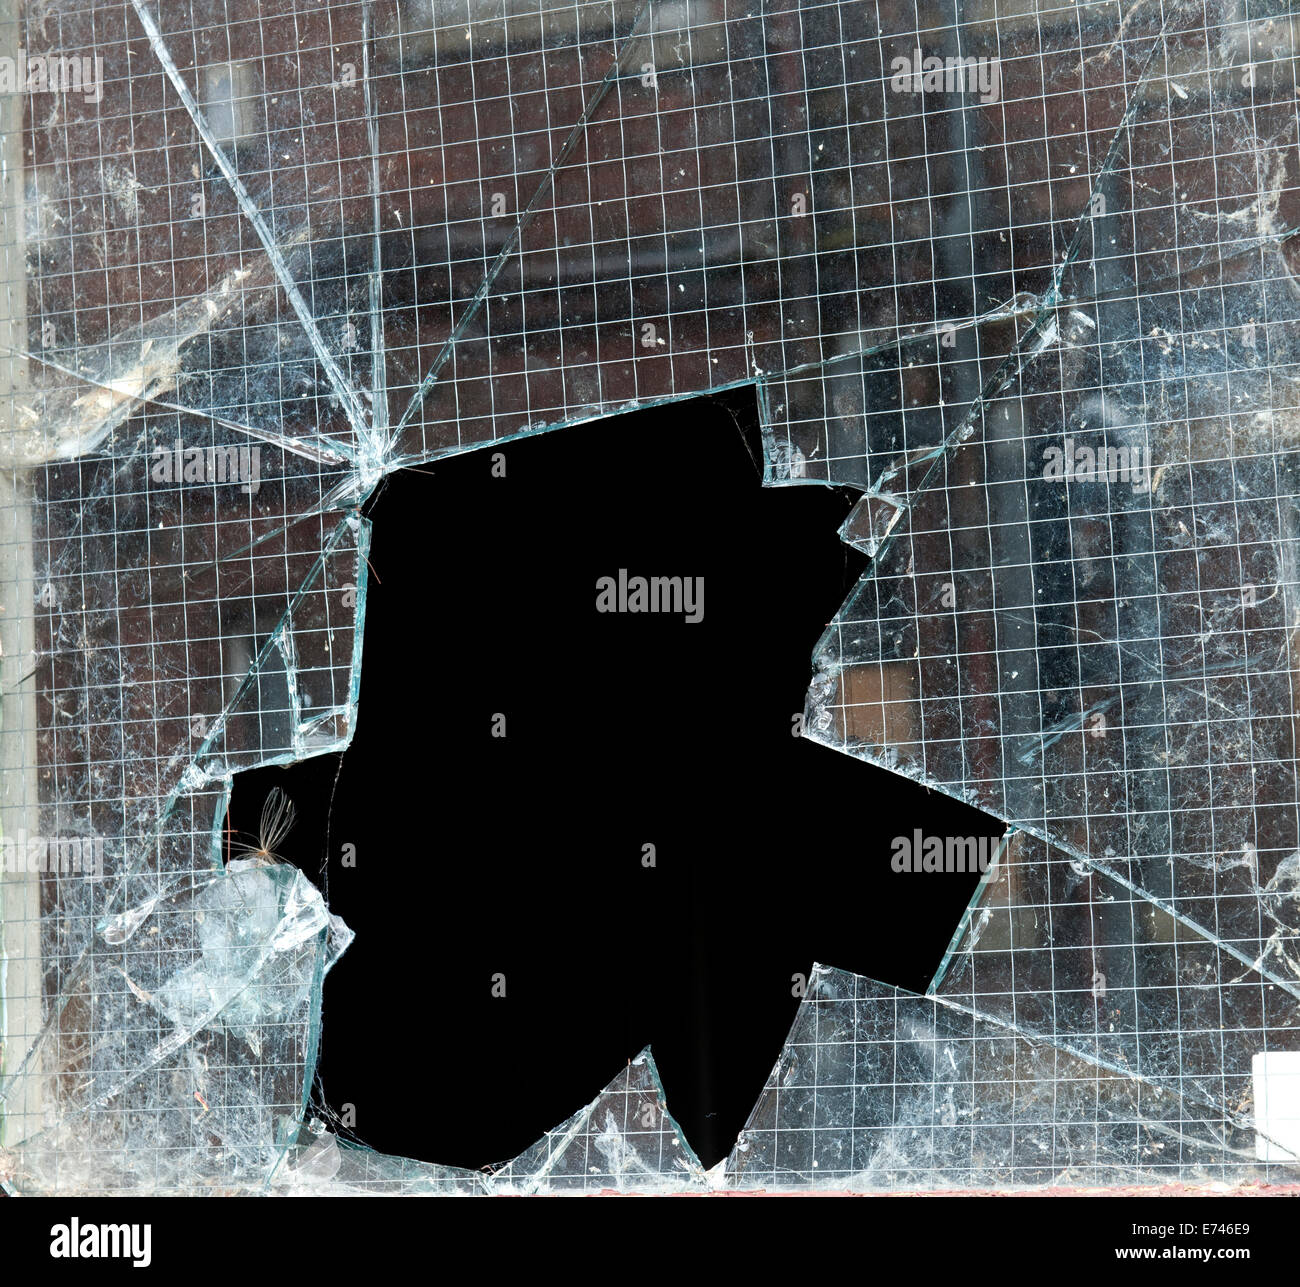 Broken window glass as a result of a burglary or break in. - Stock Image